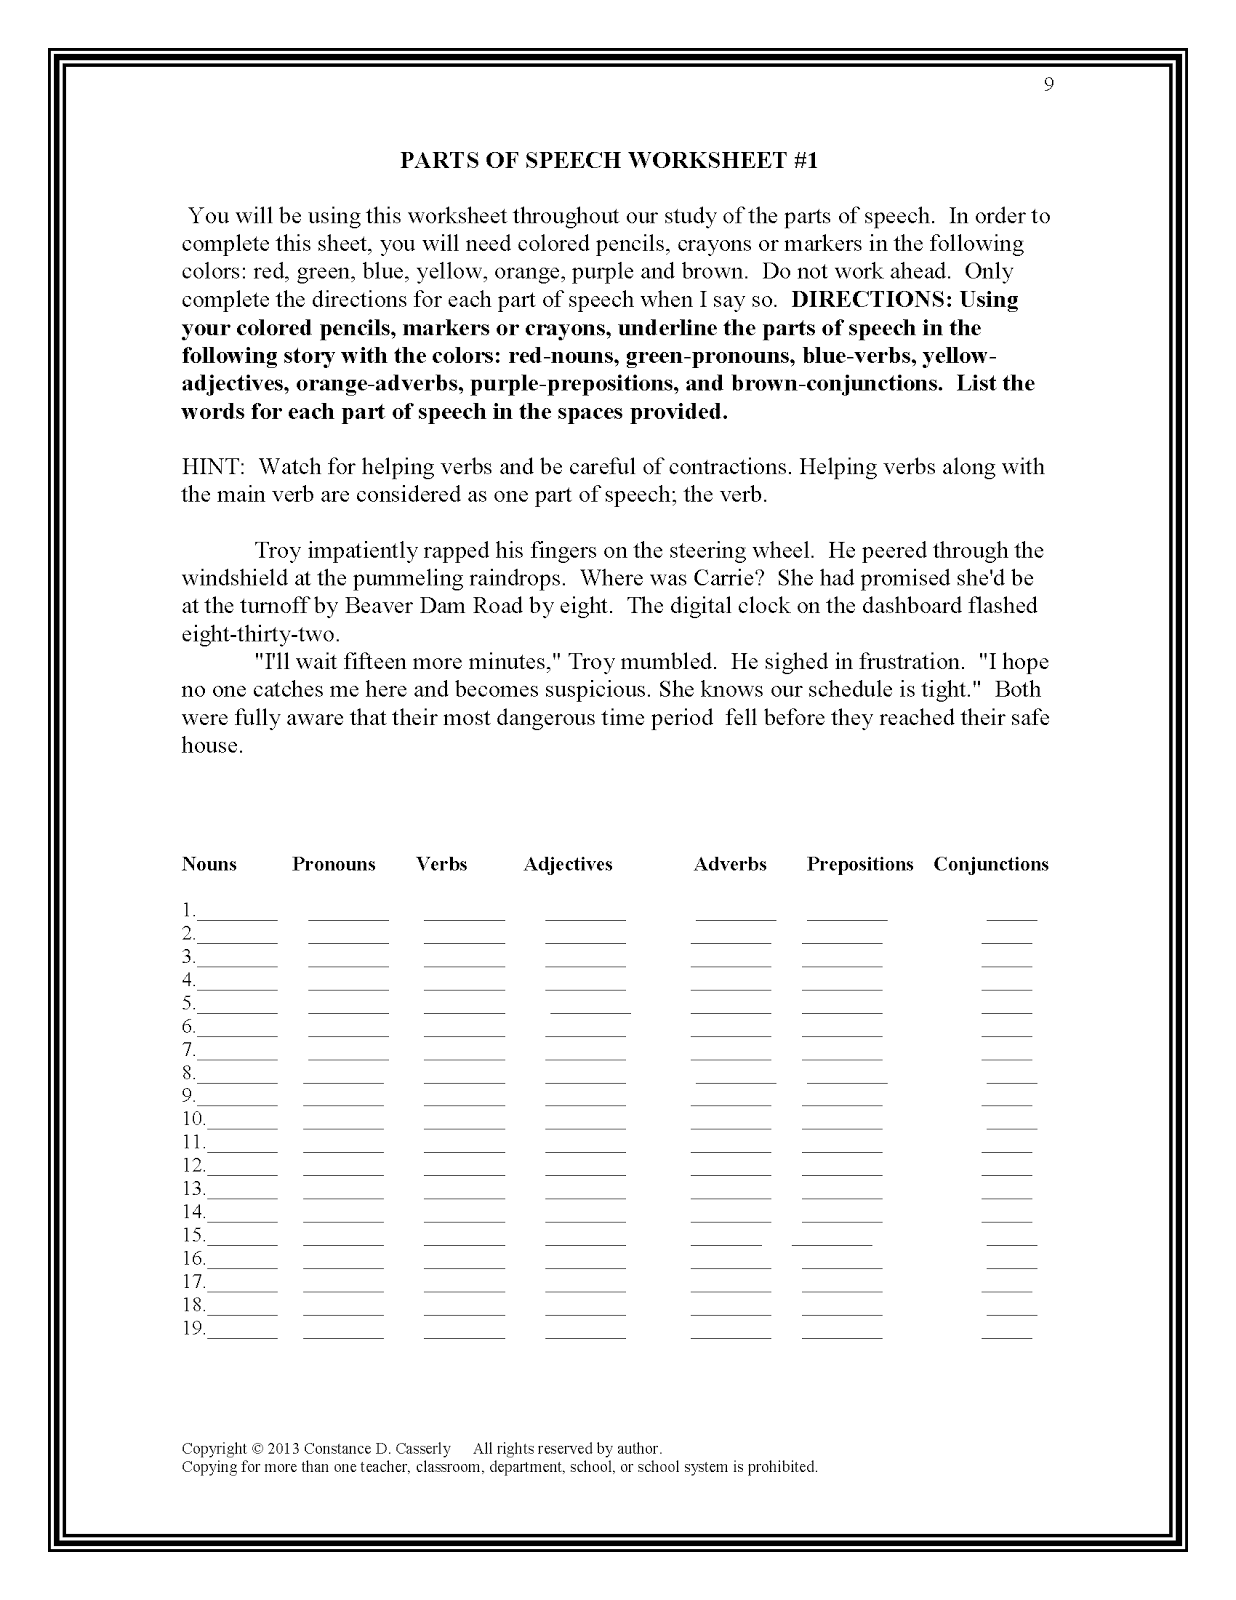 Worksheets Grammar Worksheets For High School printable grammar worksheets high school teach it write students math worksheet won t grumble over these grapplers printable